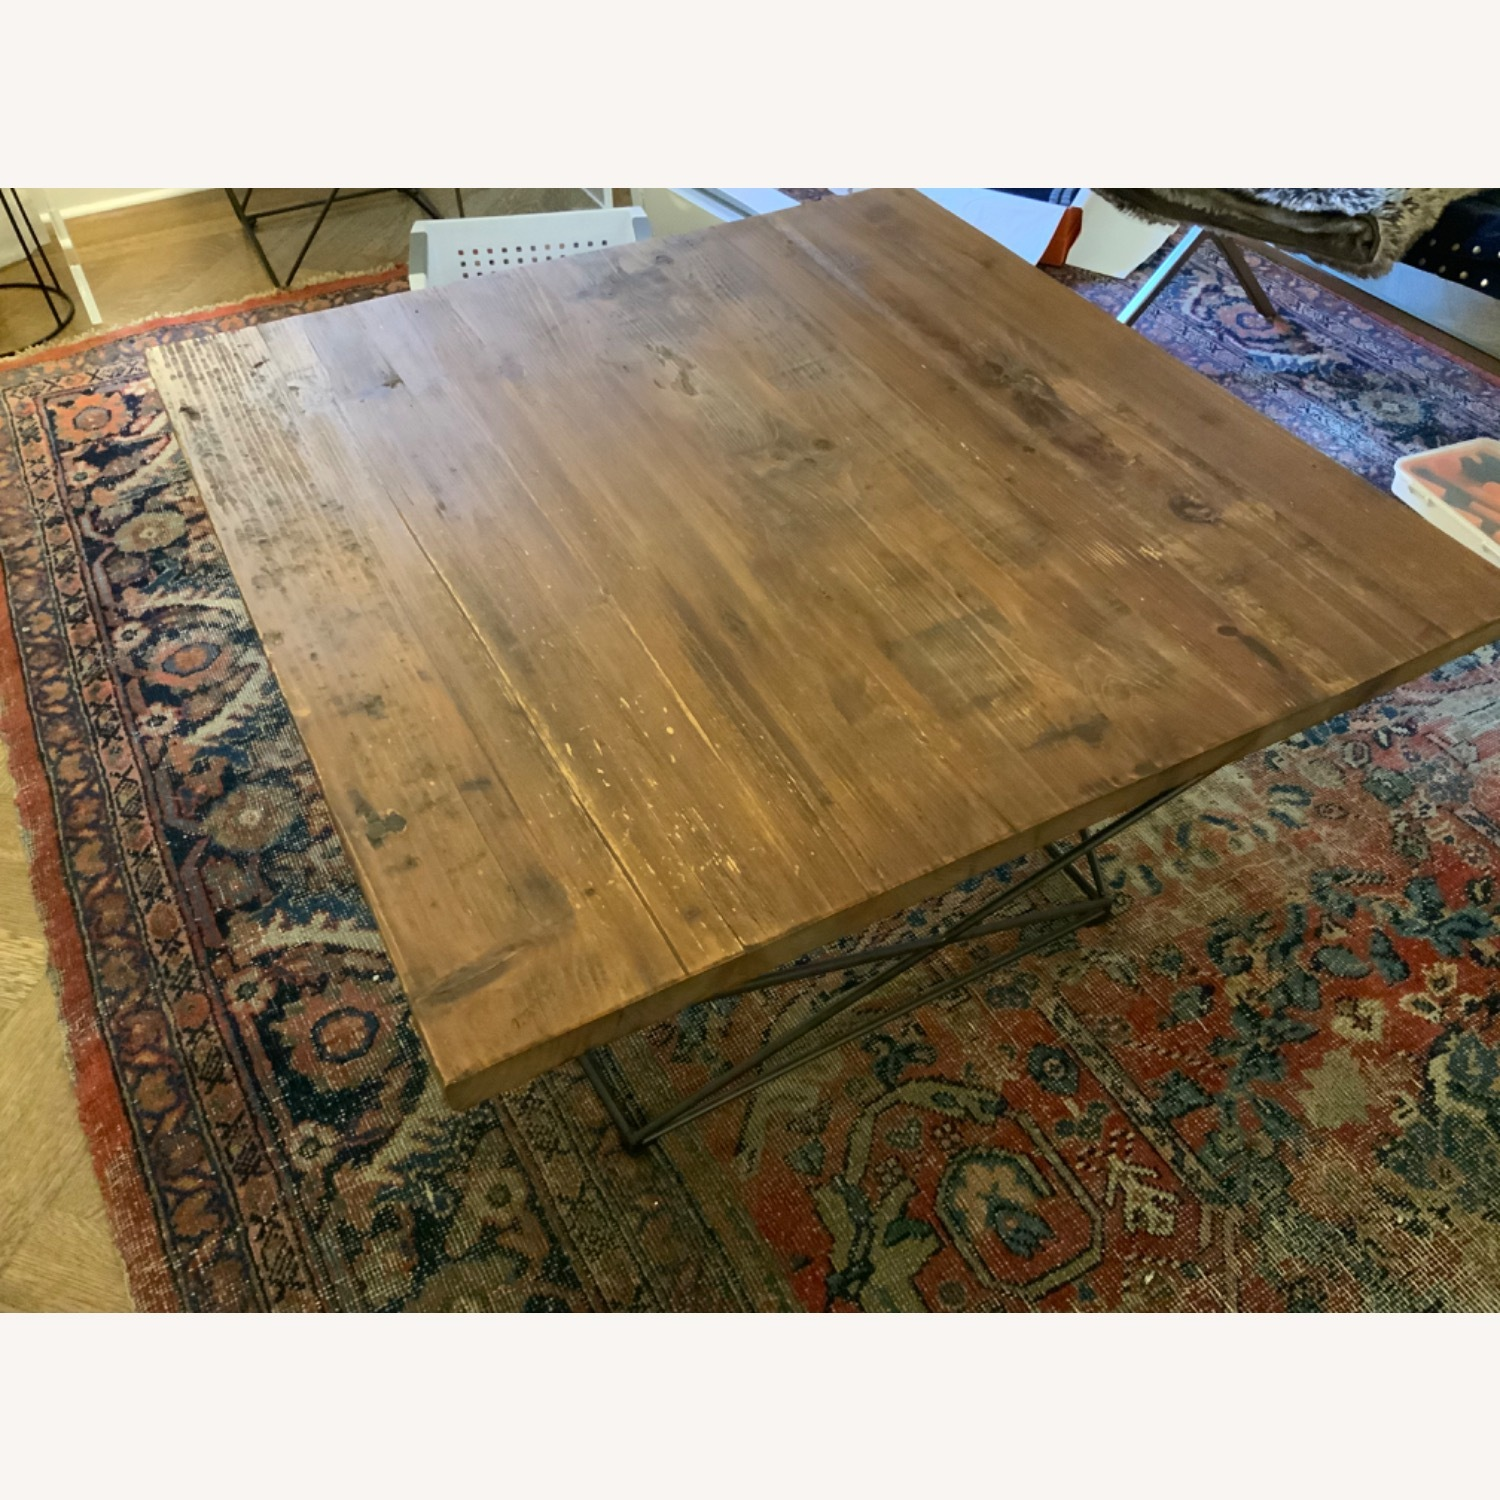 West Elm Reclaimed Wood Coffee Table - image-5